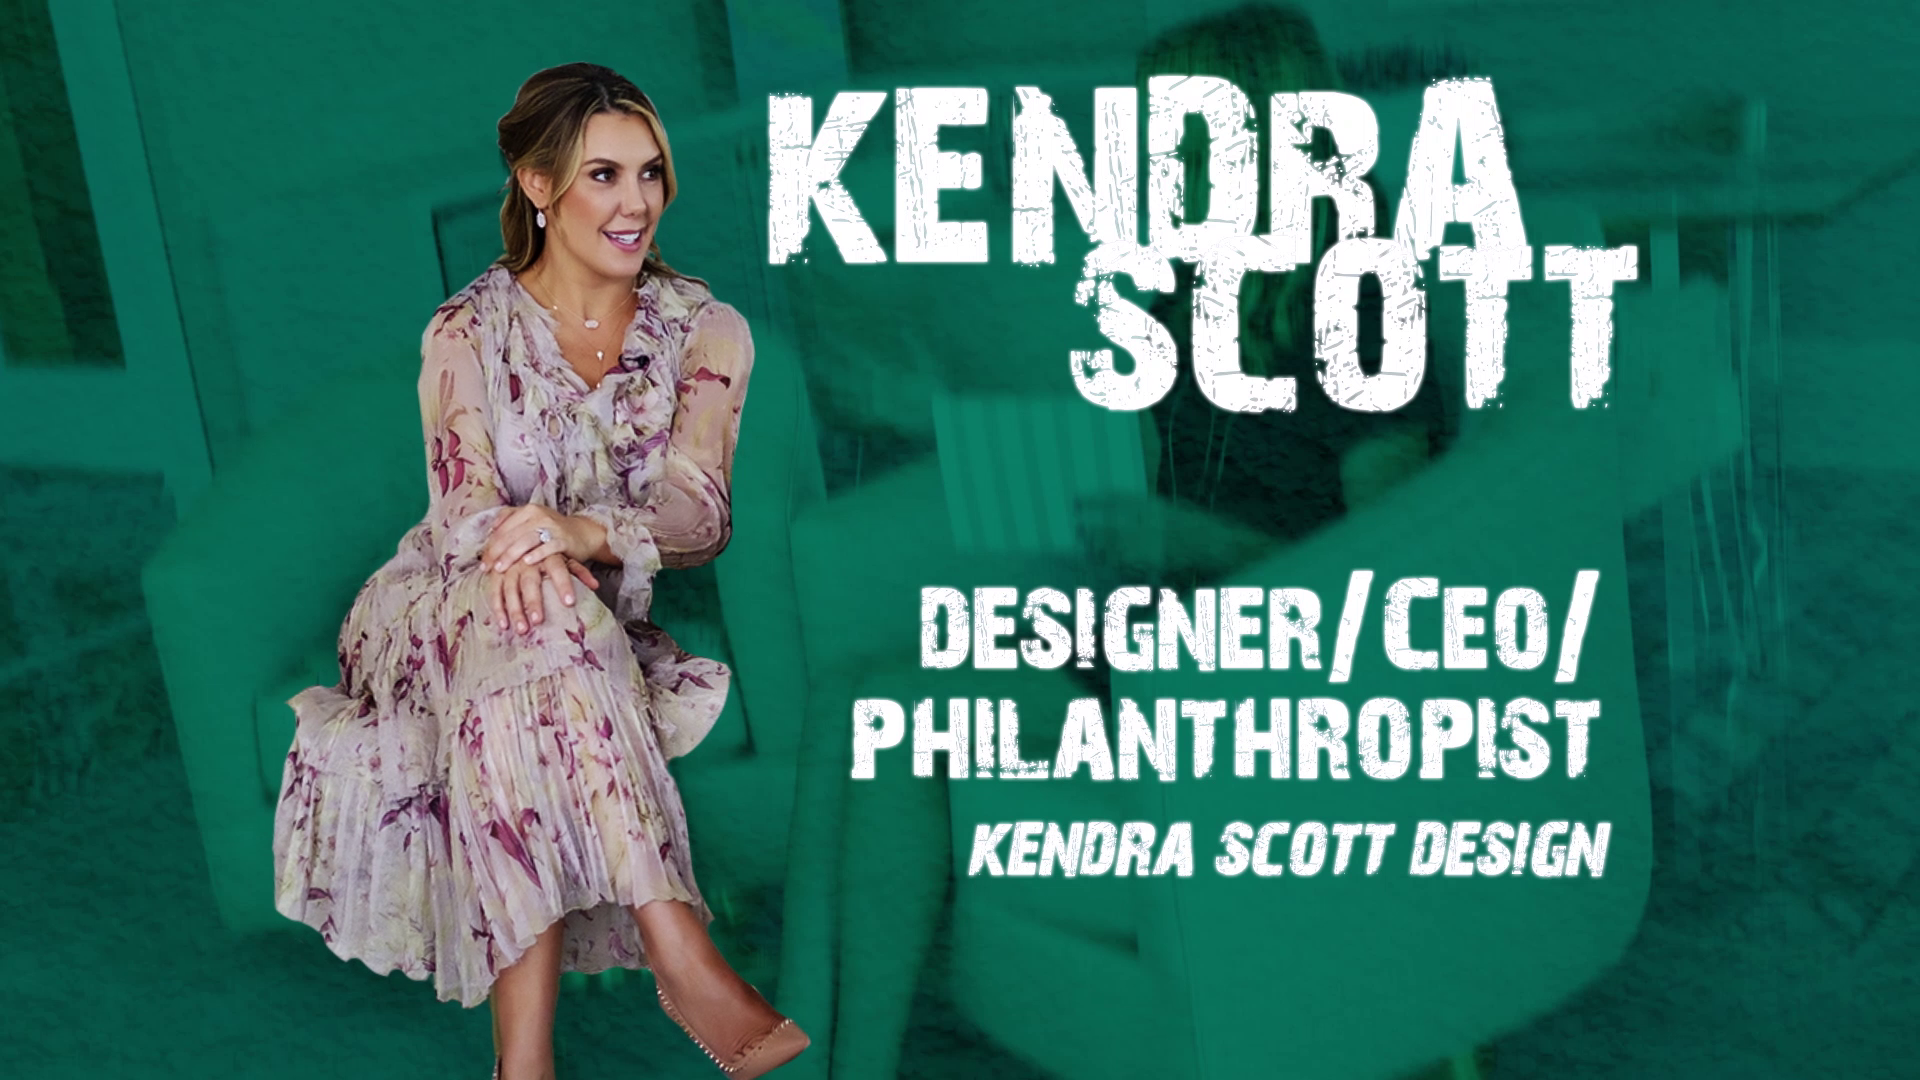 Catching up with Kendra Scott (Photo: Austin After Hours)